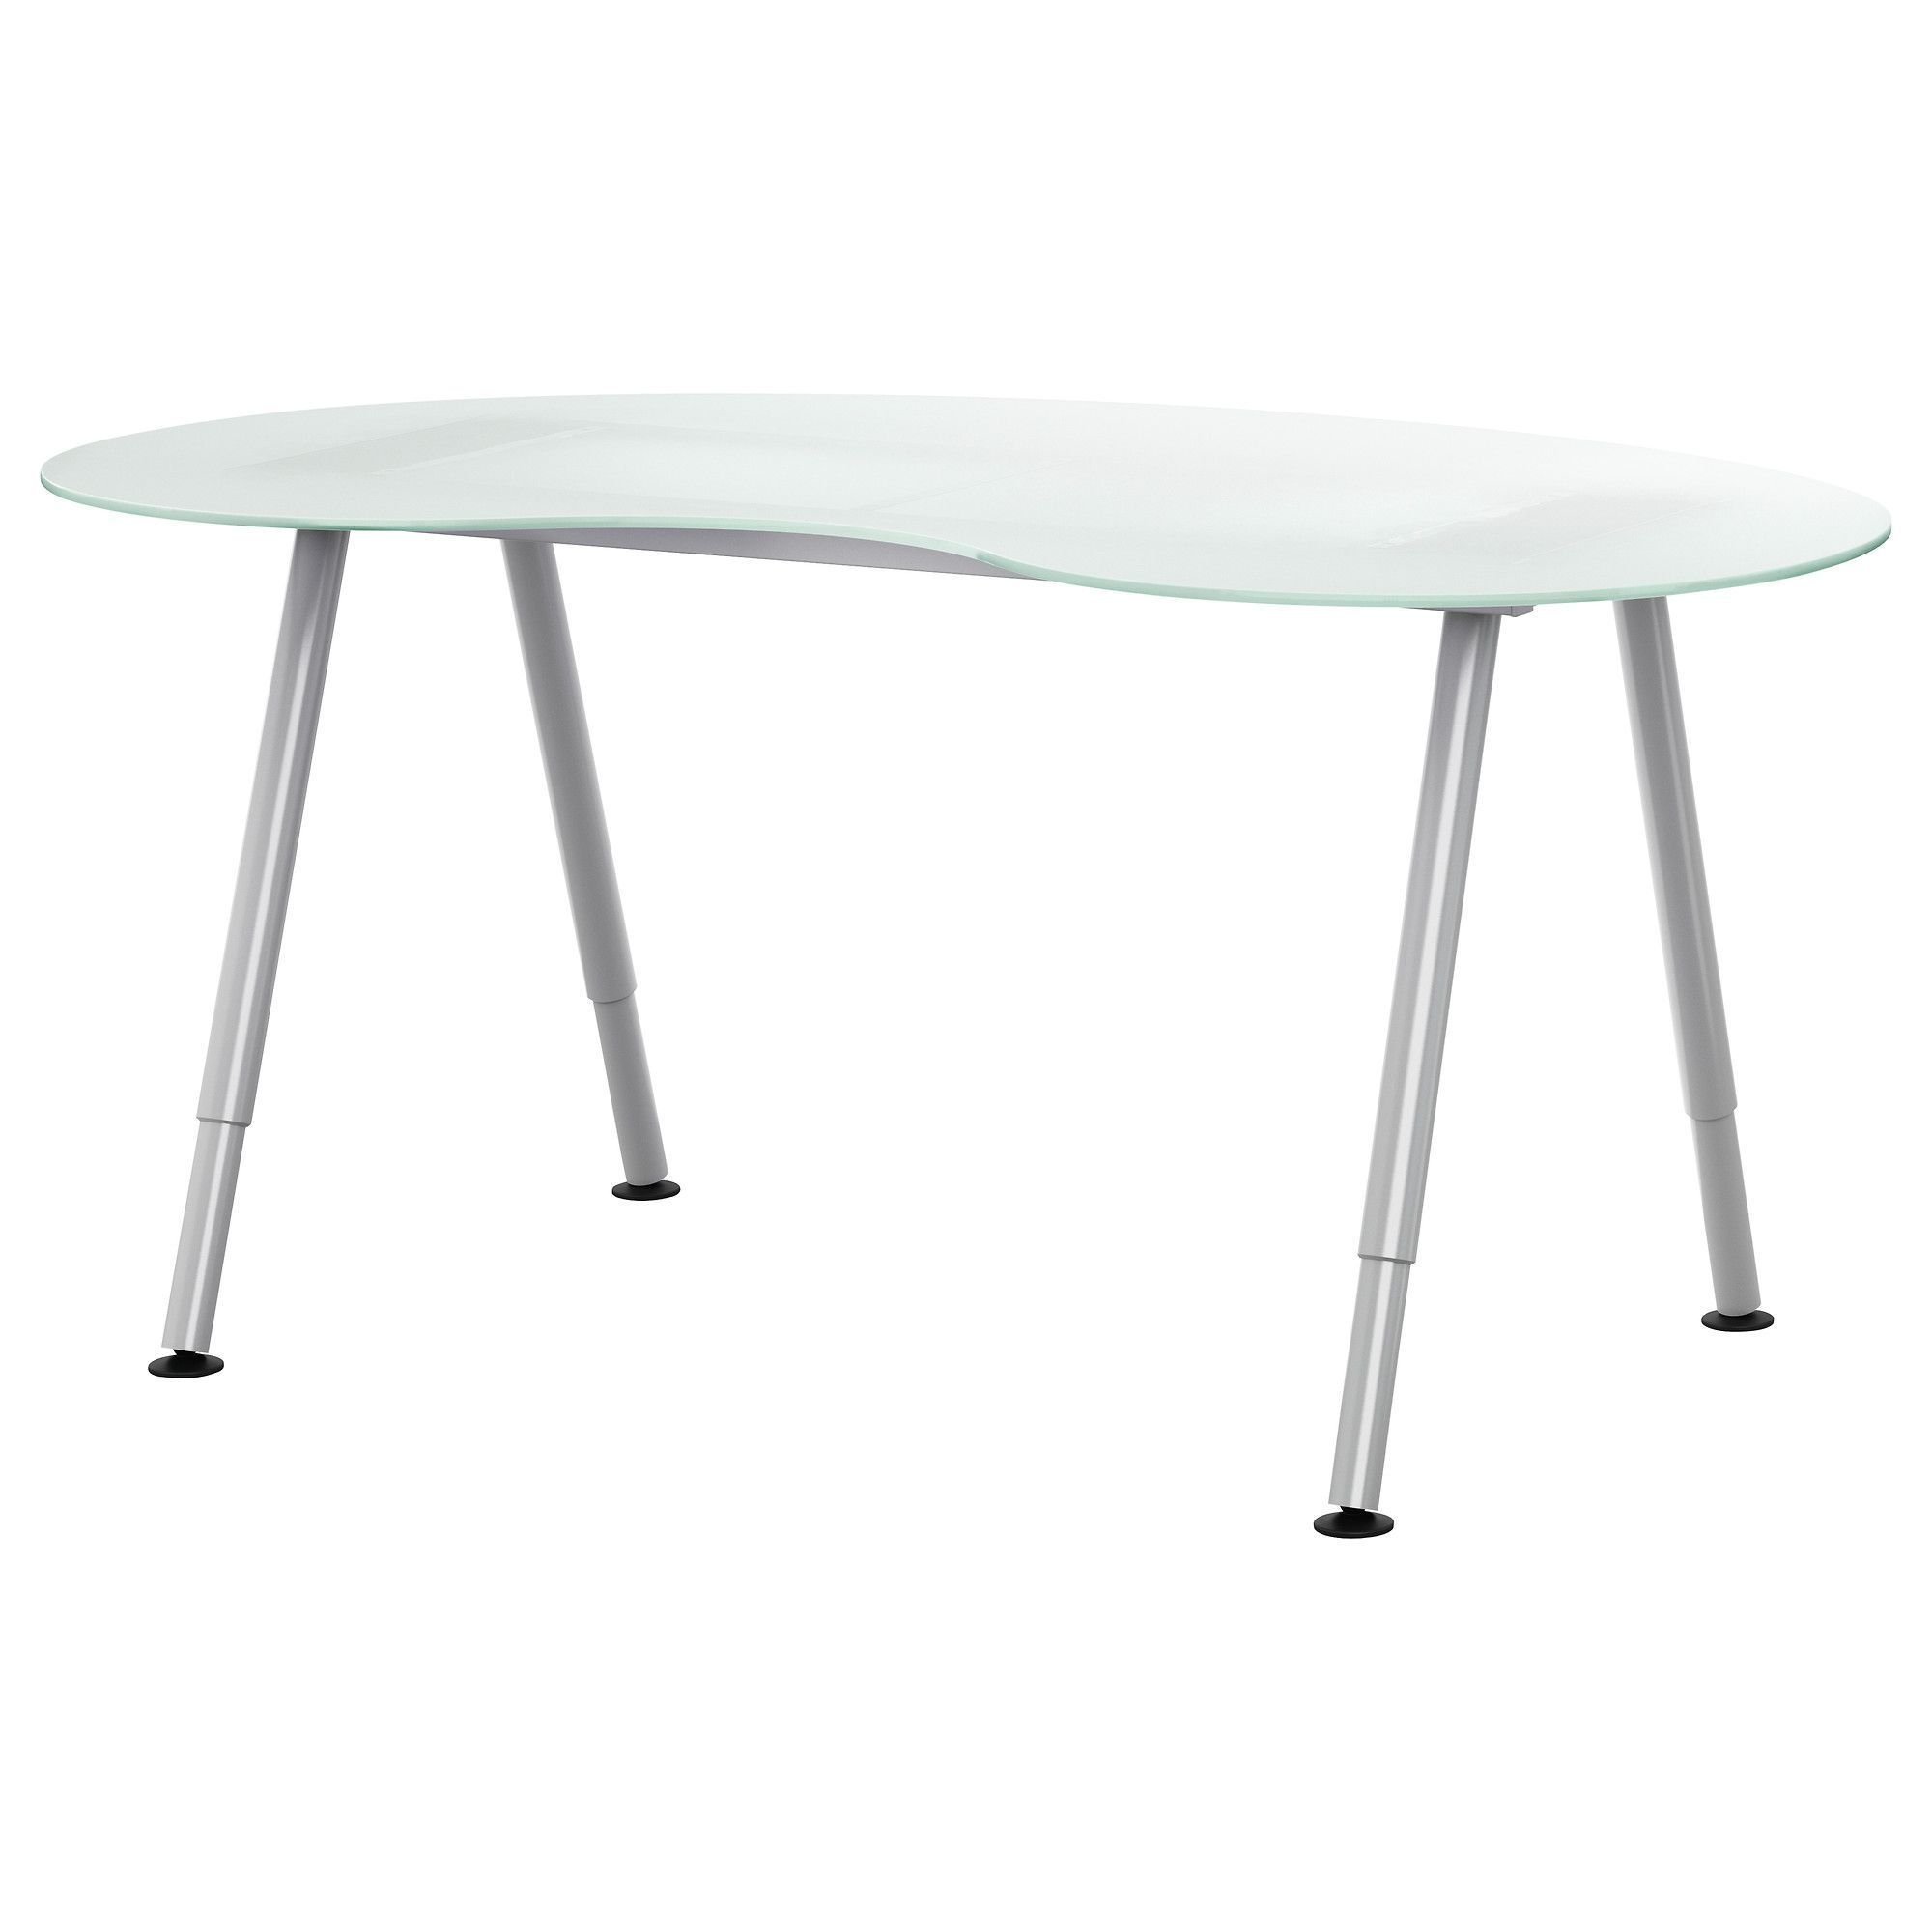 Us Furniture And Home Furnishings Ikea Glass Desk Ikea Glass Table Office Furniture Design